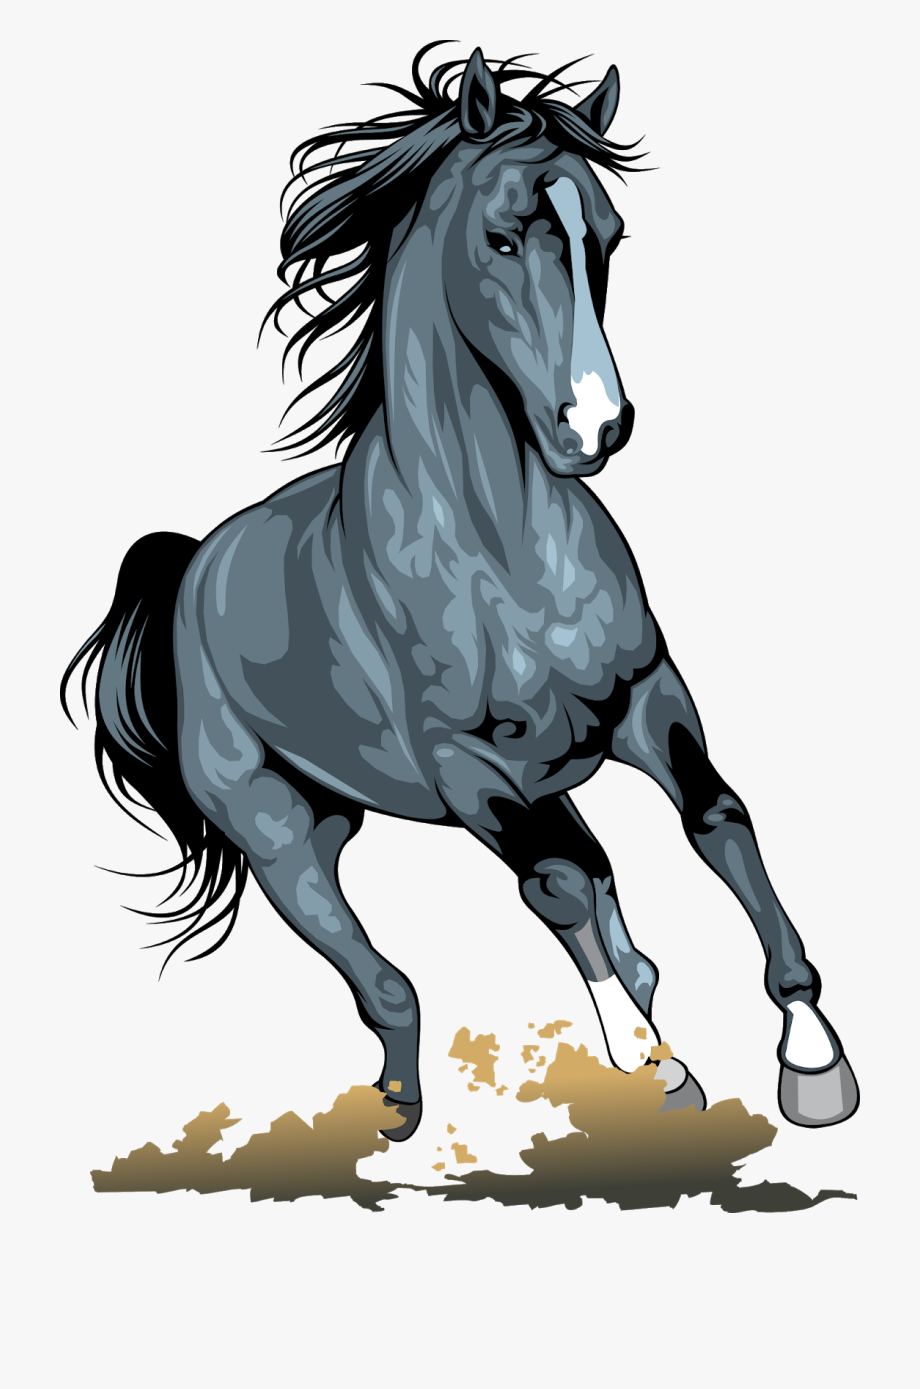 Black Horse Png Realistic Animal Vecto 1251439 Png Images Pngio